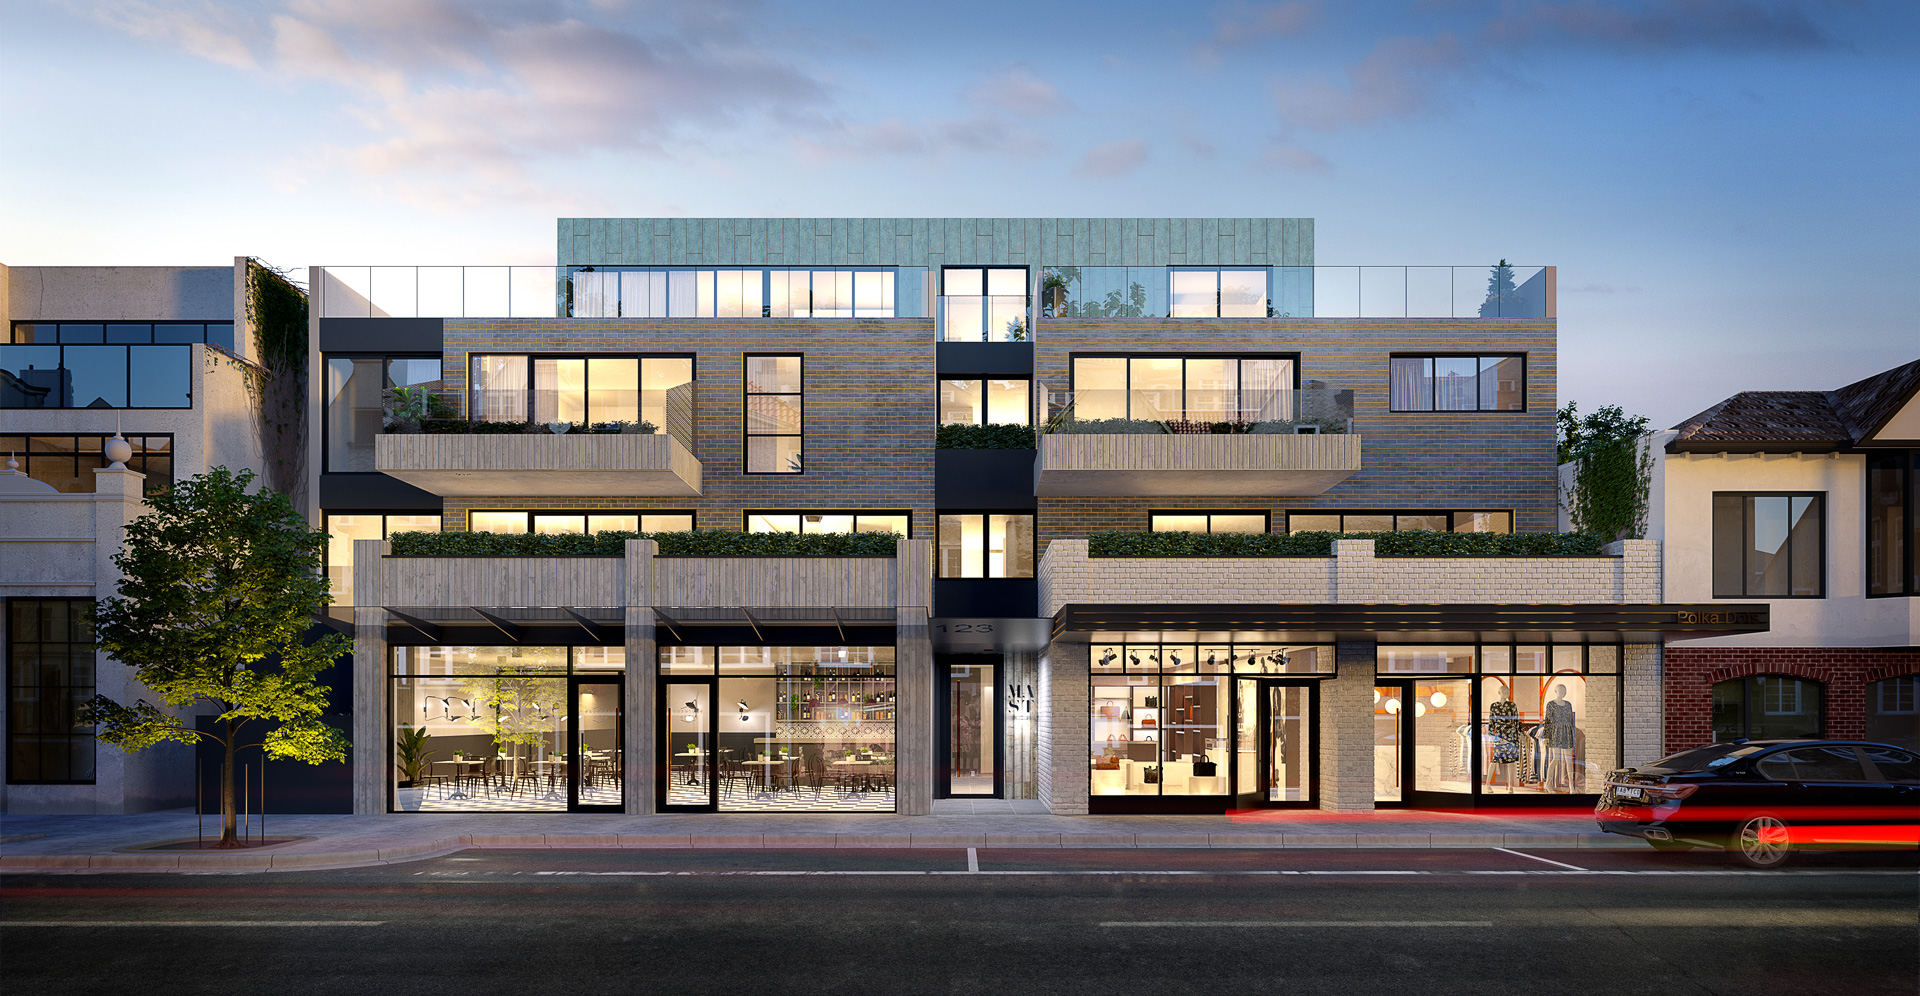 Mast Brighton is being developed by Graceland and LOI Projects and designed by The Buchan Group